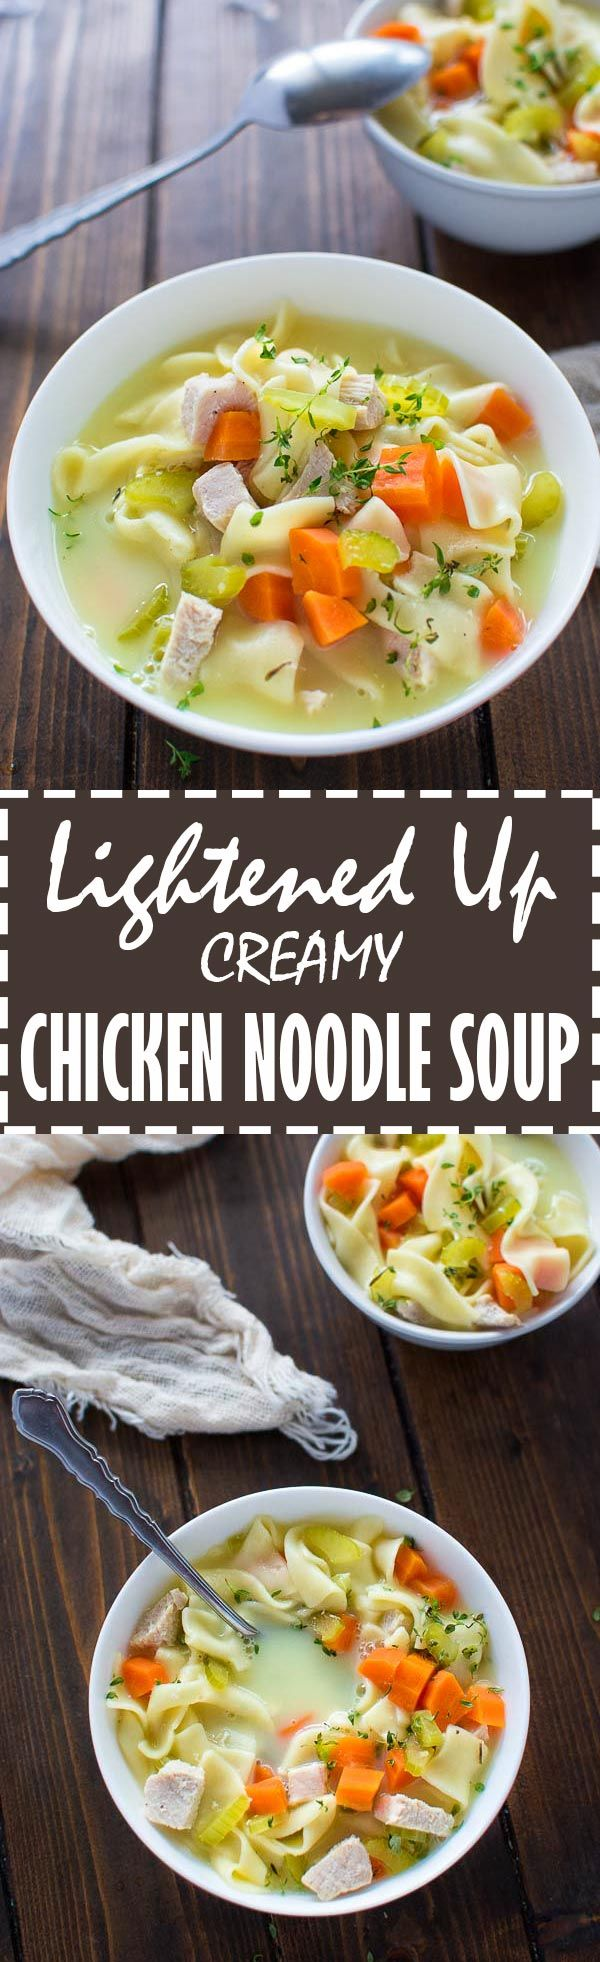 Tasty and comforting, this Lightened Up Creamy Chicken Noodle Soup is easy to make and can be enjoyed without any guilt. ❤ COOKTORIA.COM